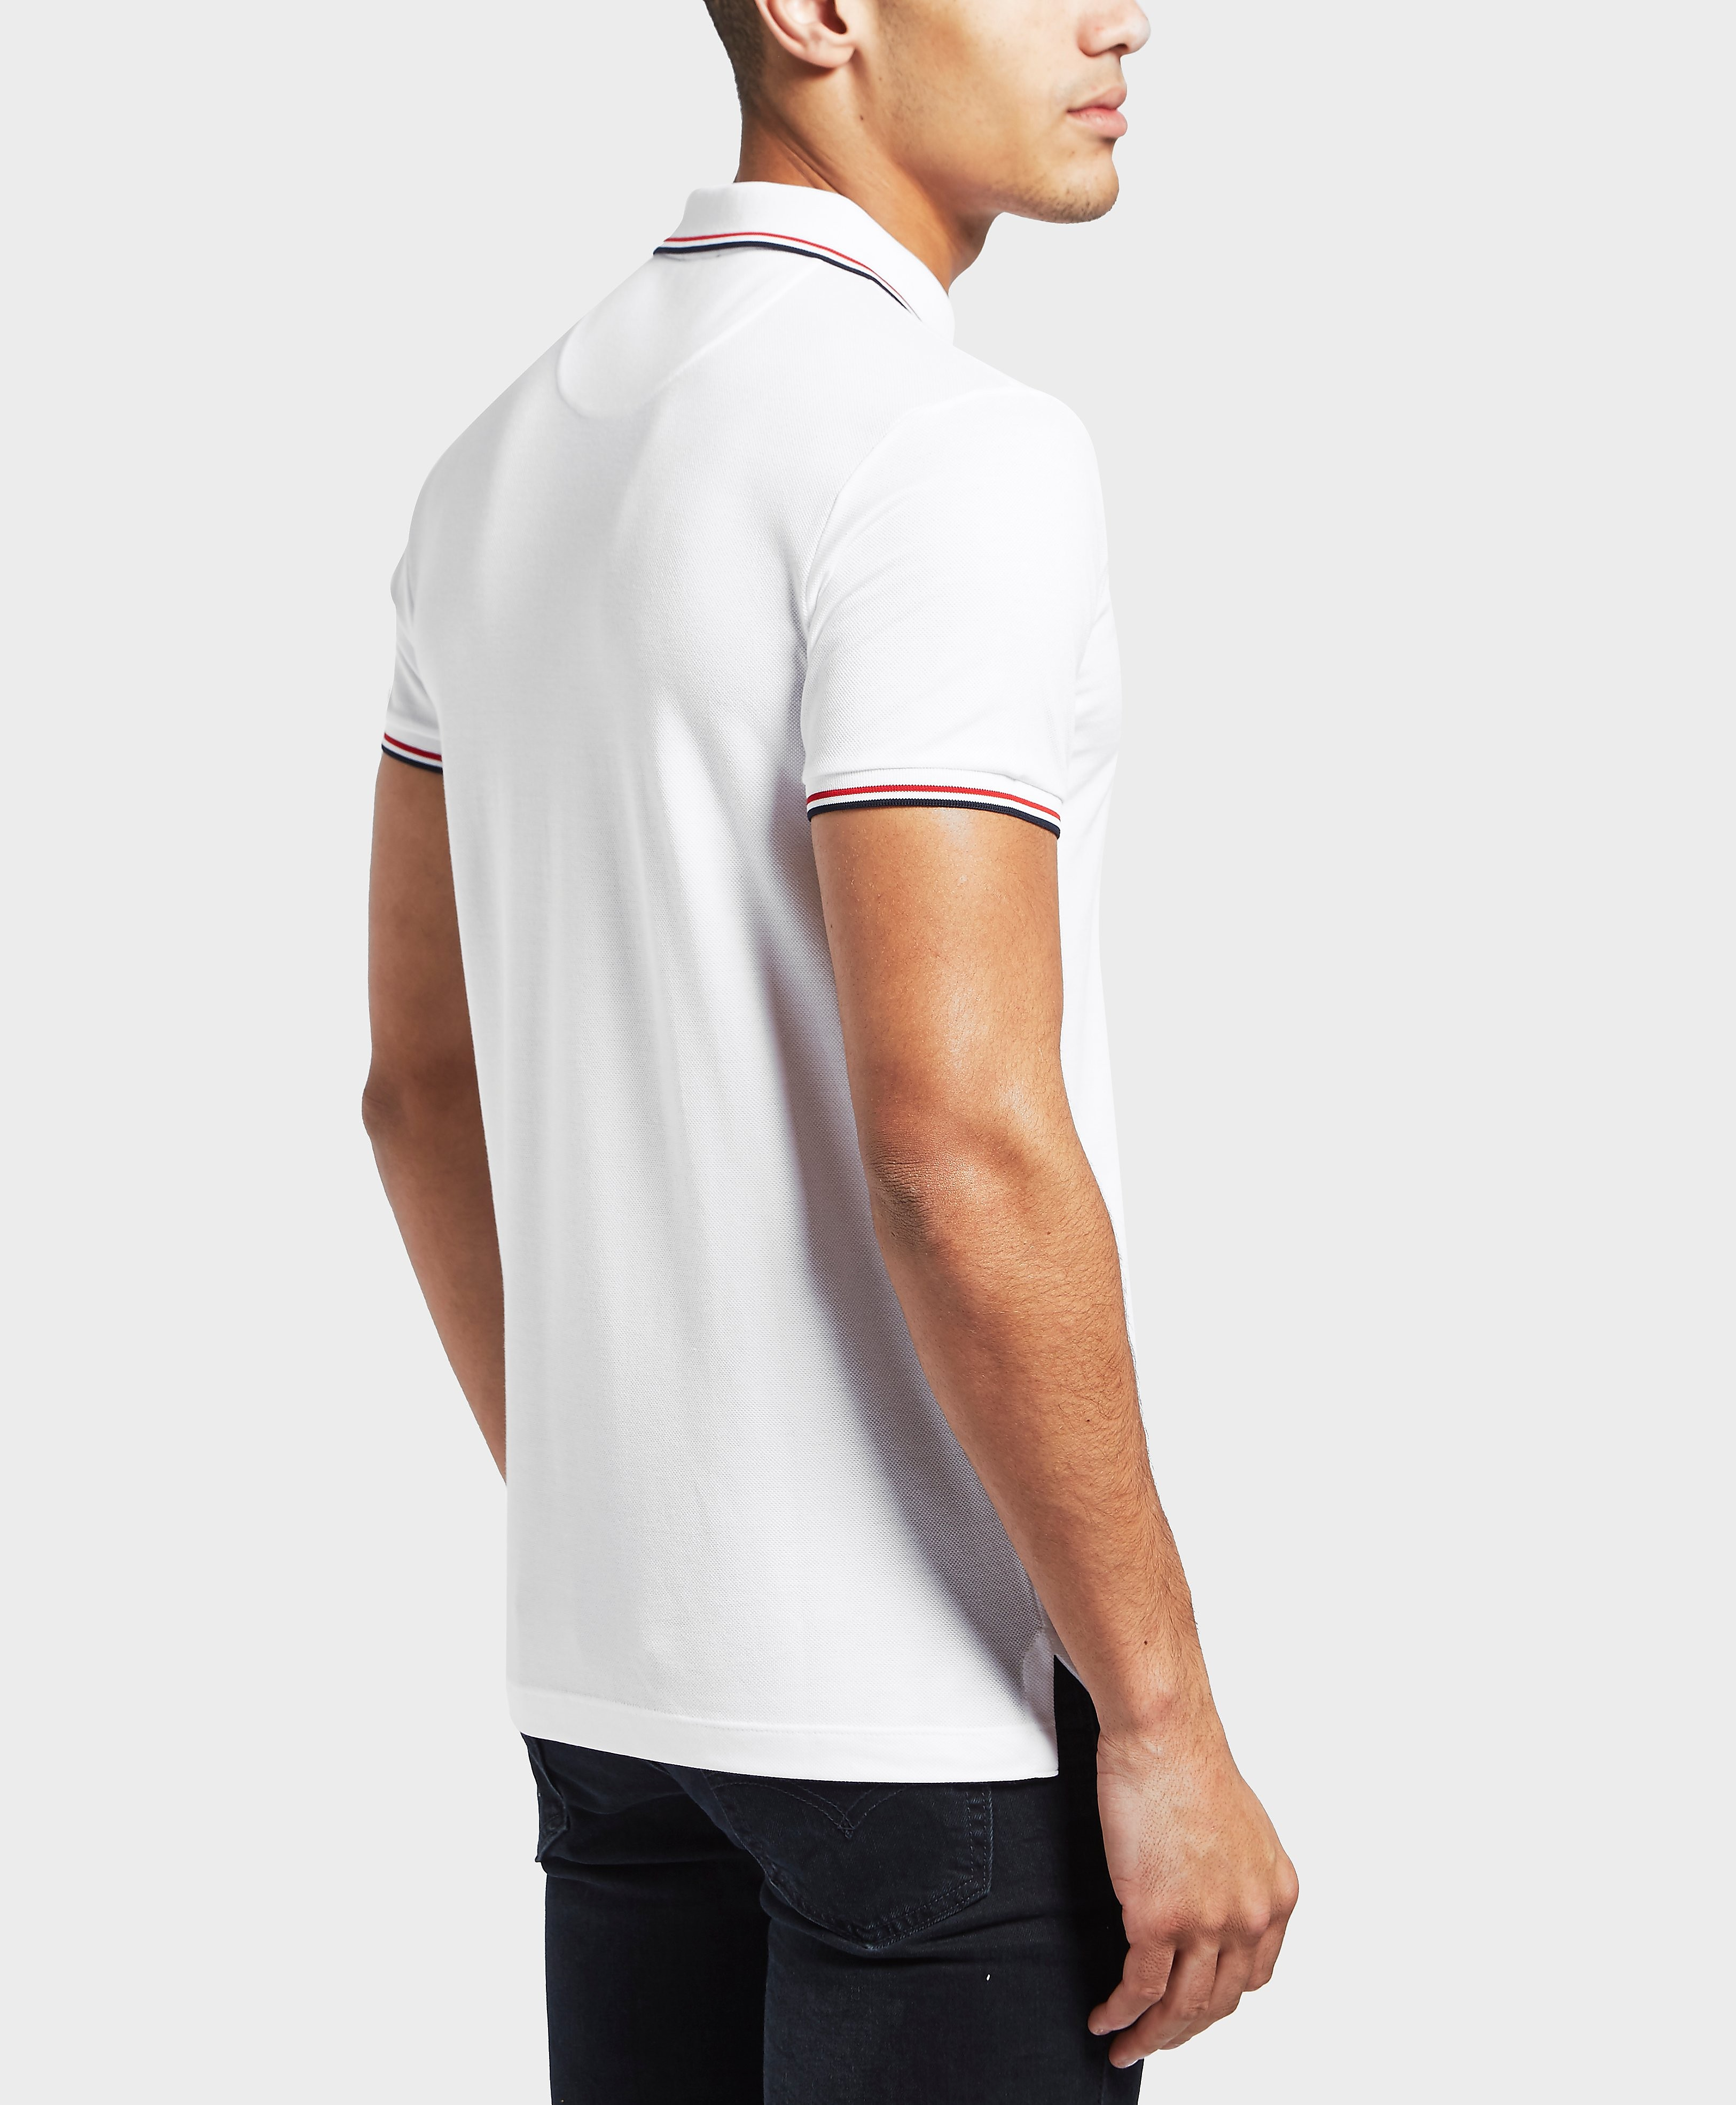 Paul and Shark Tipped Short Sleeve Polo Shirt - Exclusive